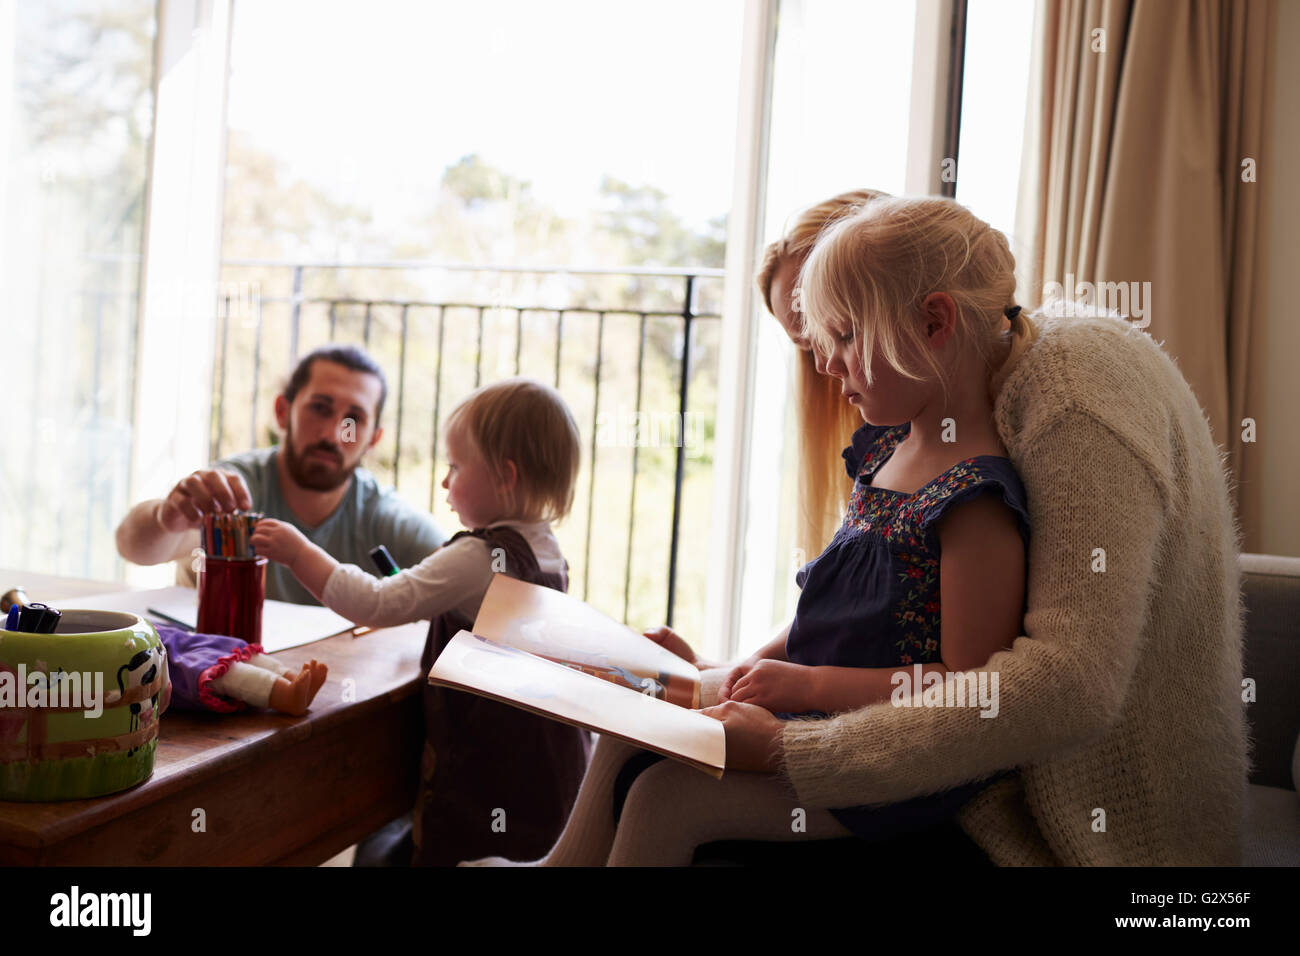 Family Drawing Pictures And Reading At Home Together - Stock Image